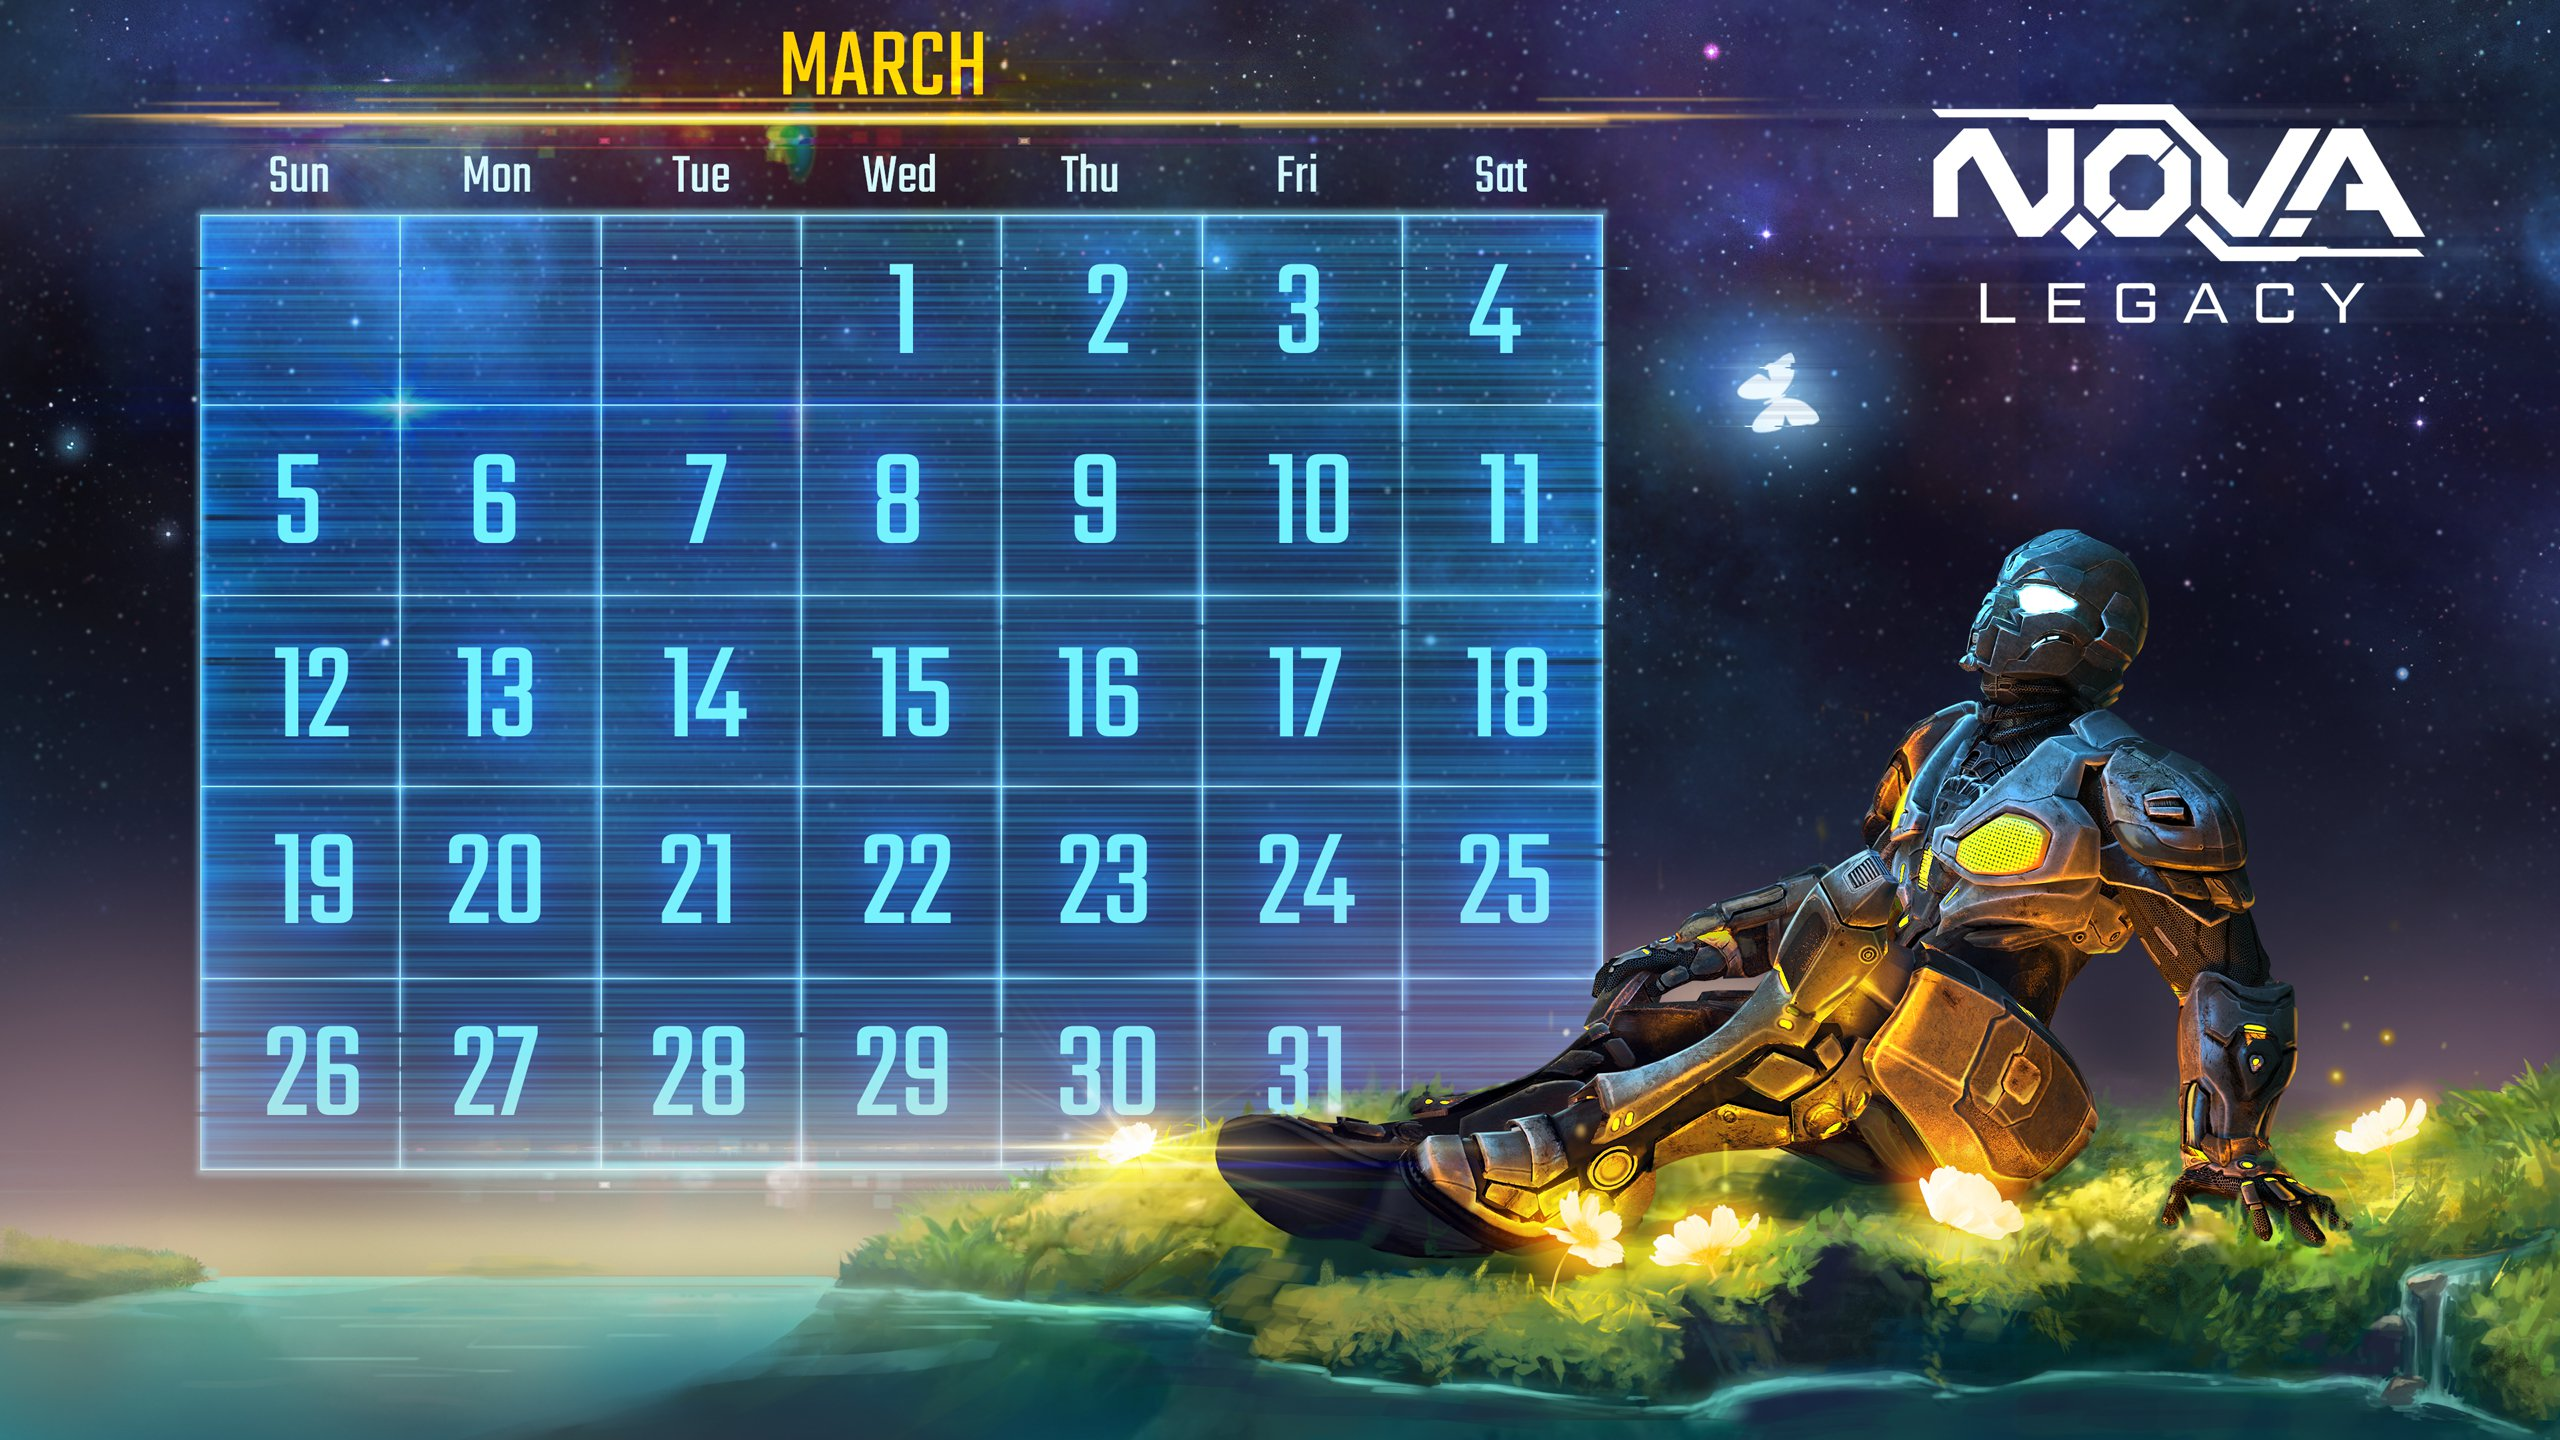 Download NOVA Legacy calendar and wallpaper March   Gameloft 2560x1440